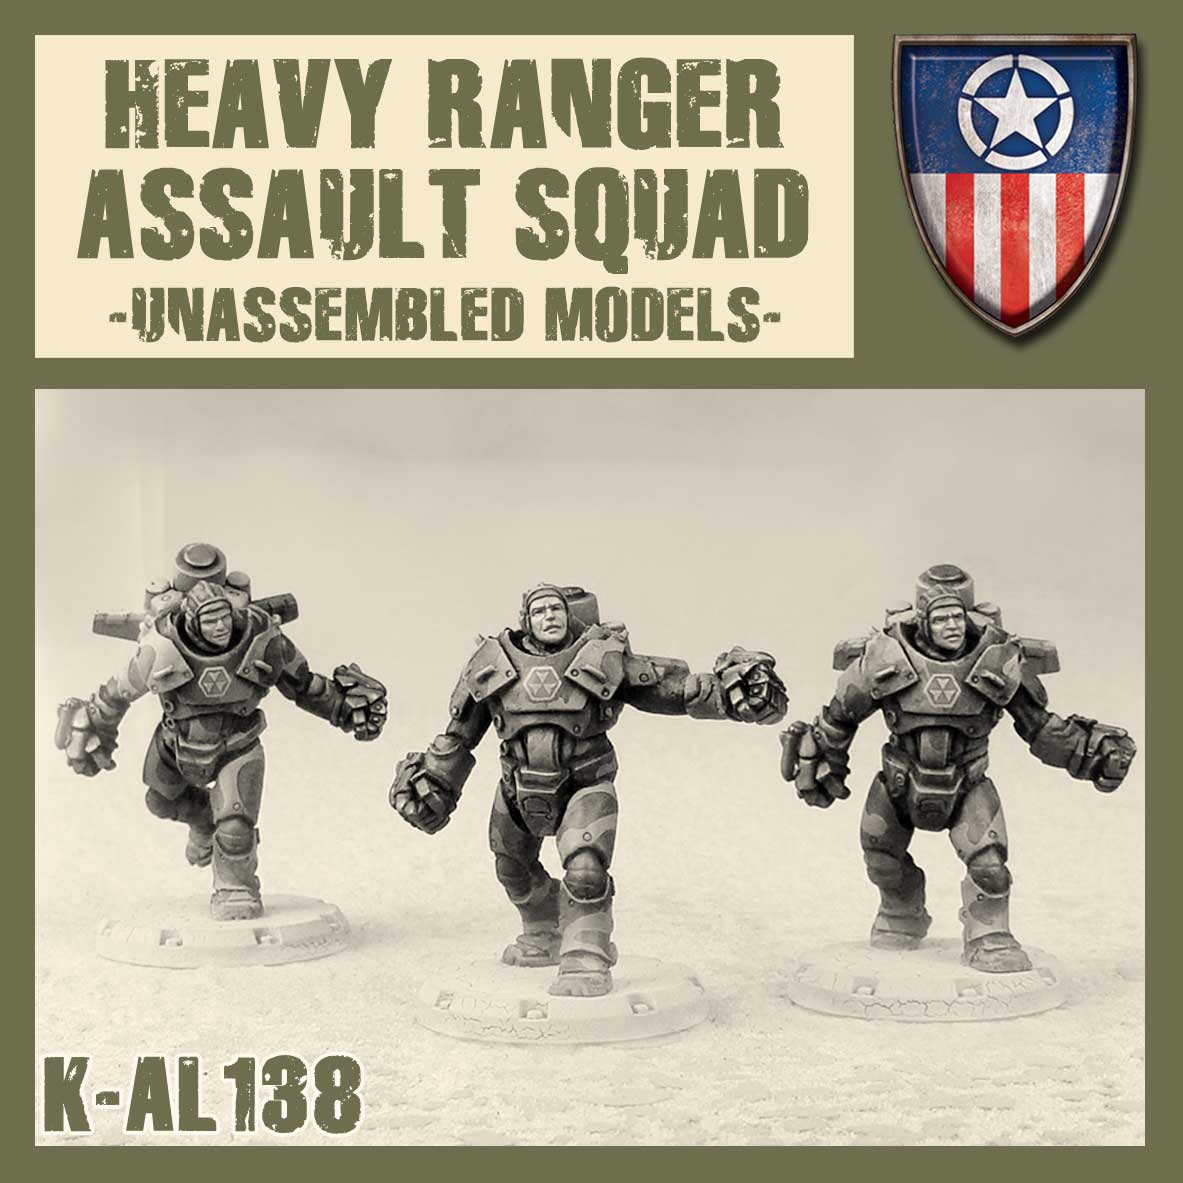 Heavy Ranger Assault Squad Kit